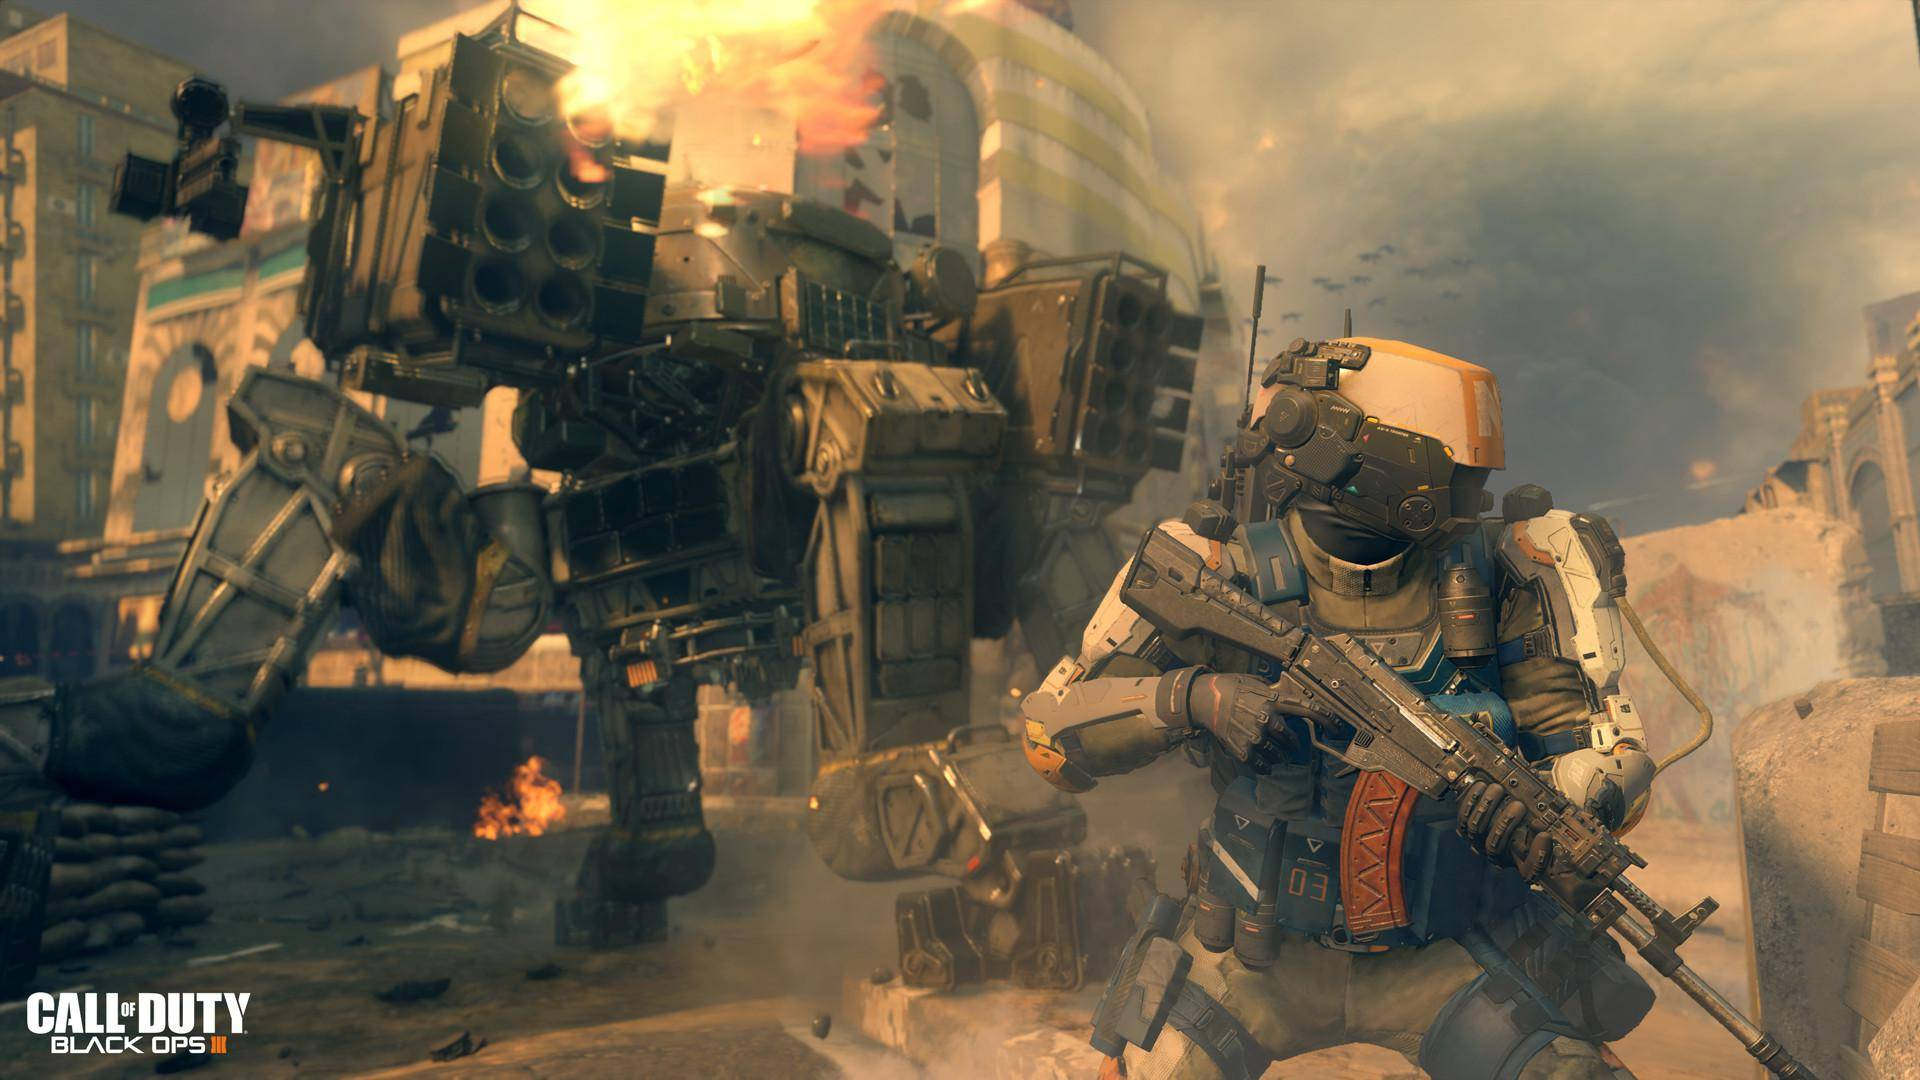 Trailer von Call of Duty Black Ops 3 BETA  anschauen